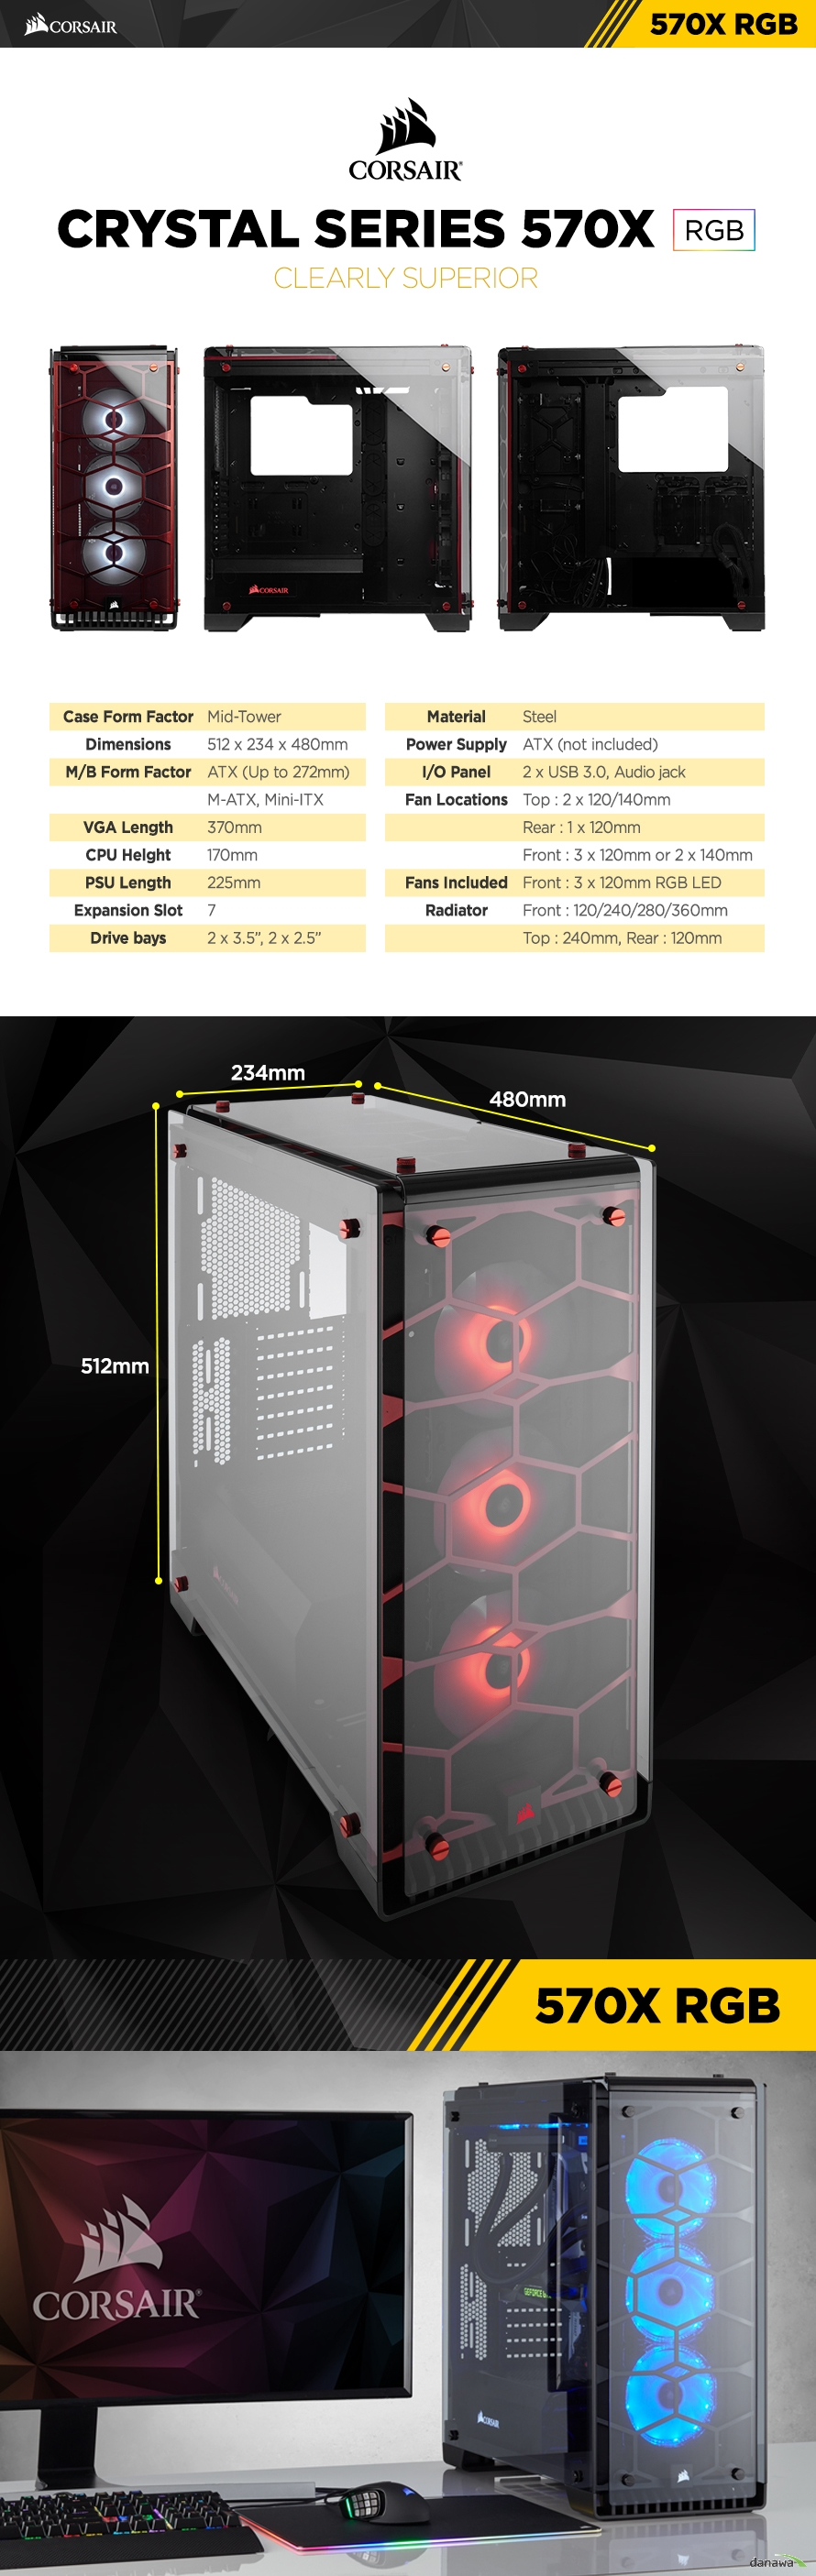 Case Form Factor	Mid-Tower